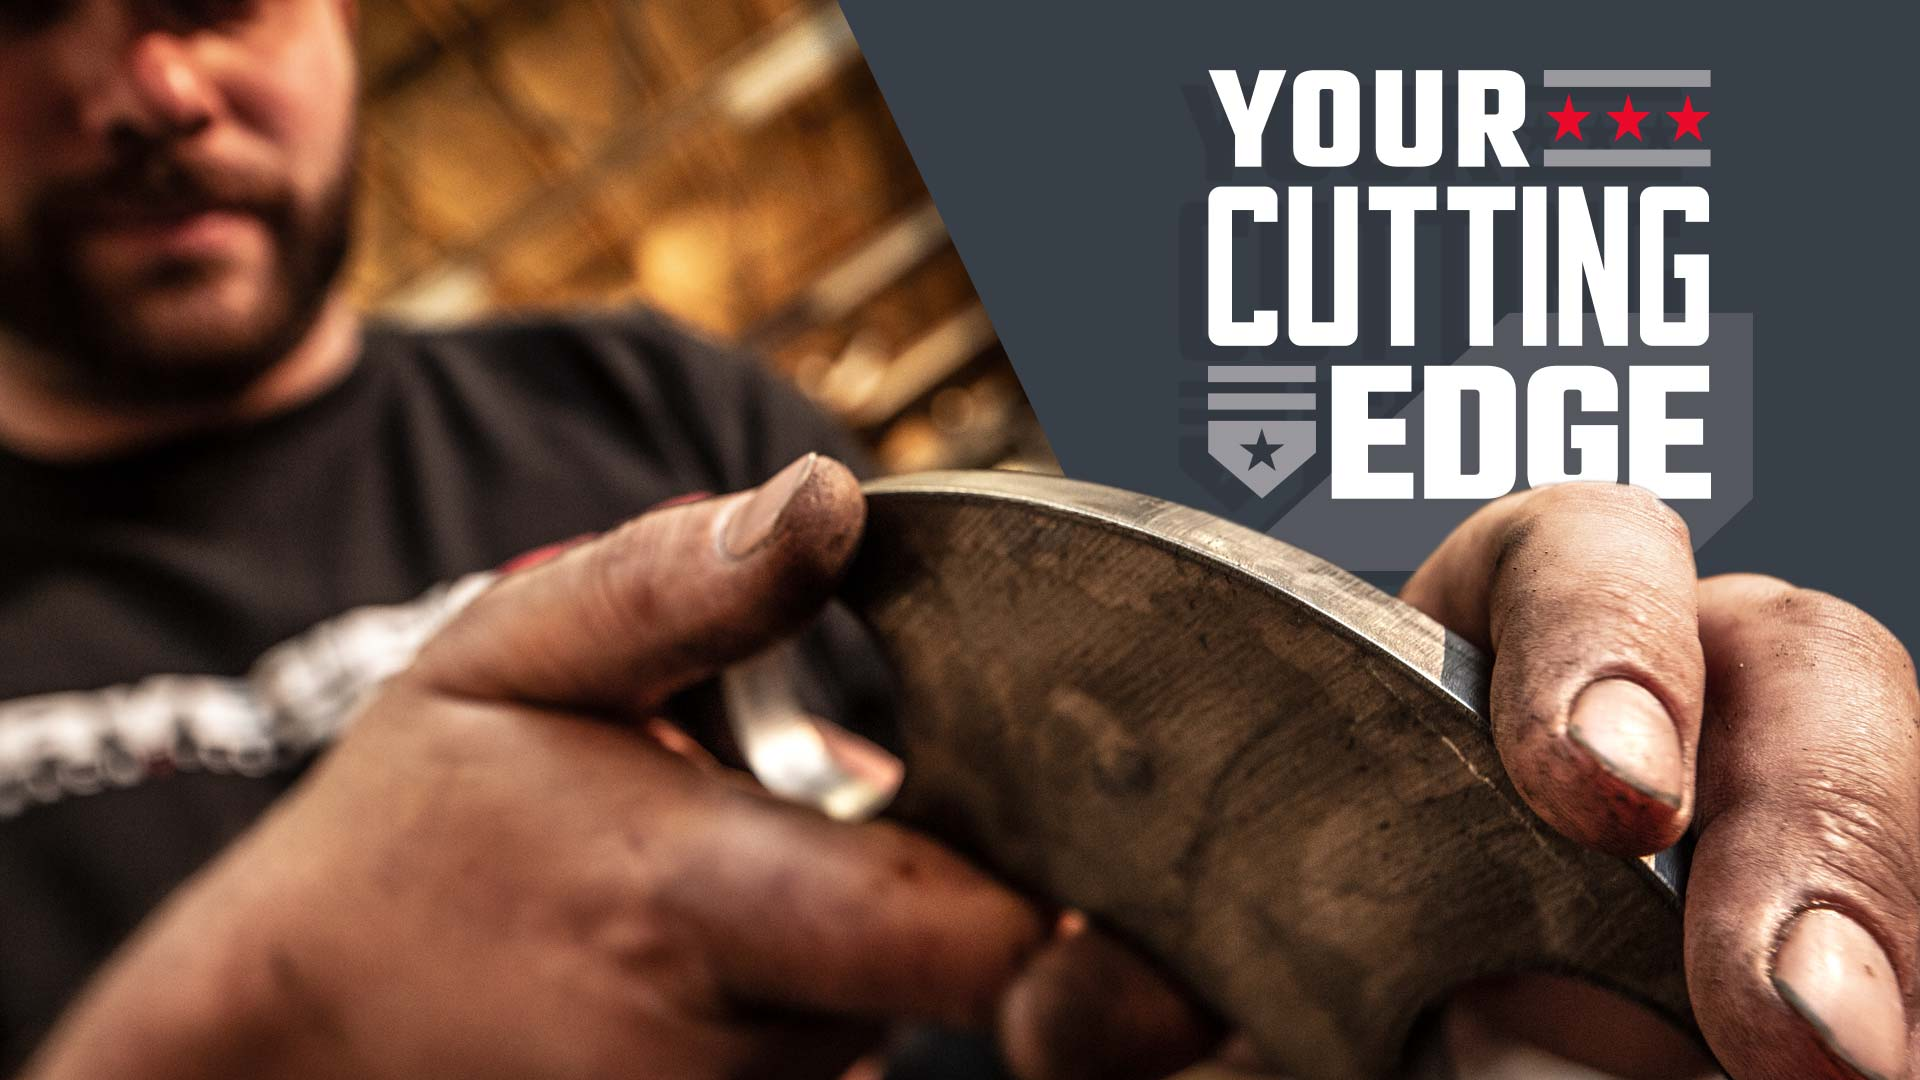 your-cutting-edge-cut-quality-dt